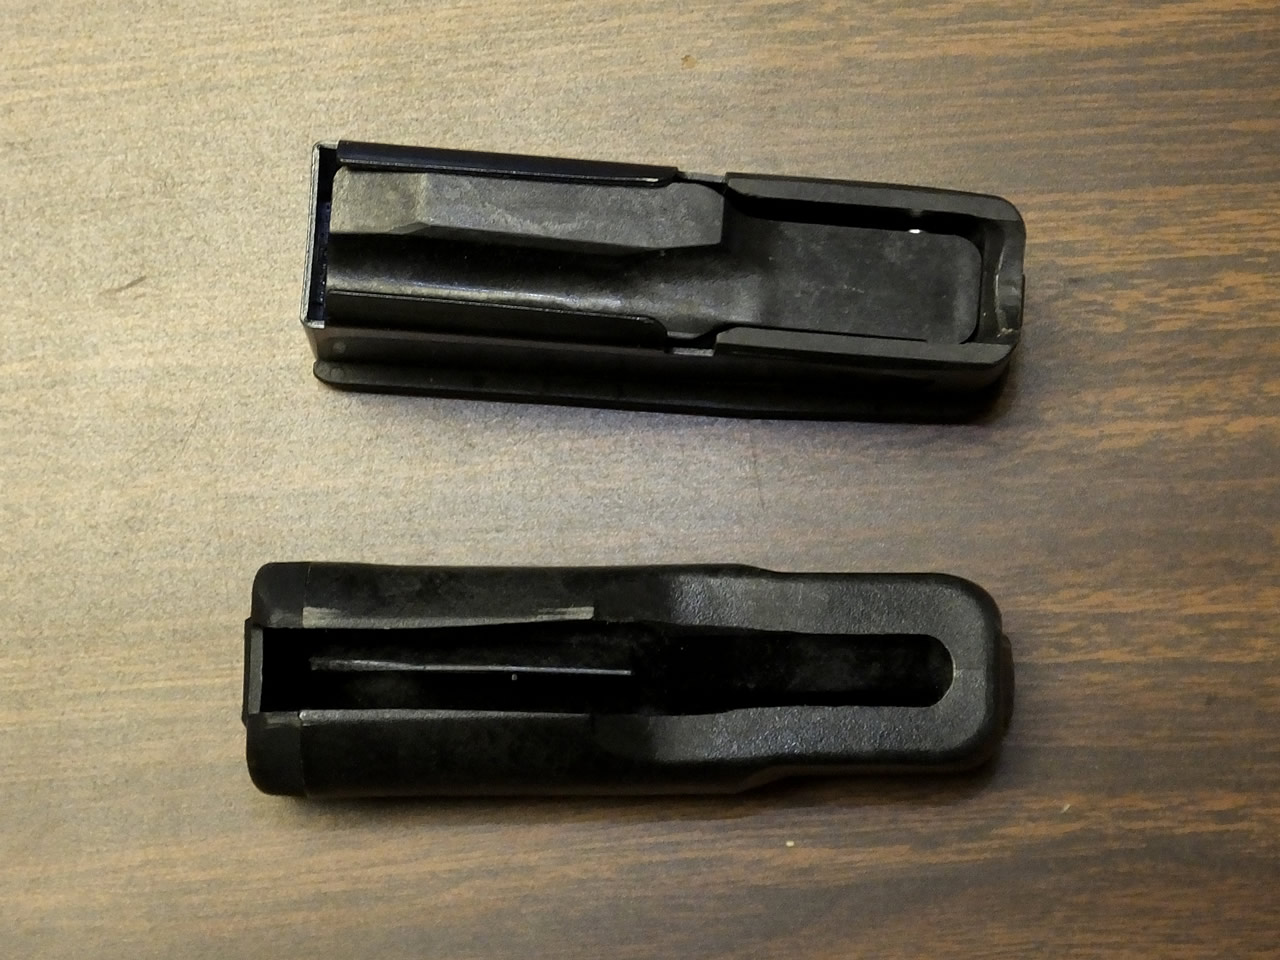 AB3 and X-Bolt Magazines